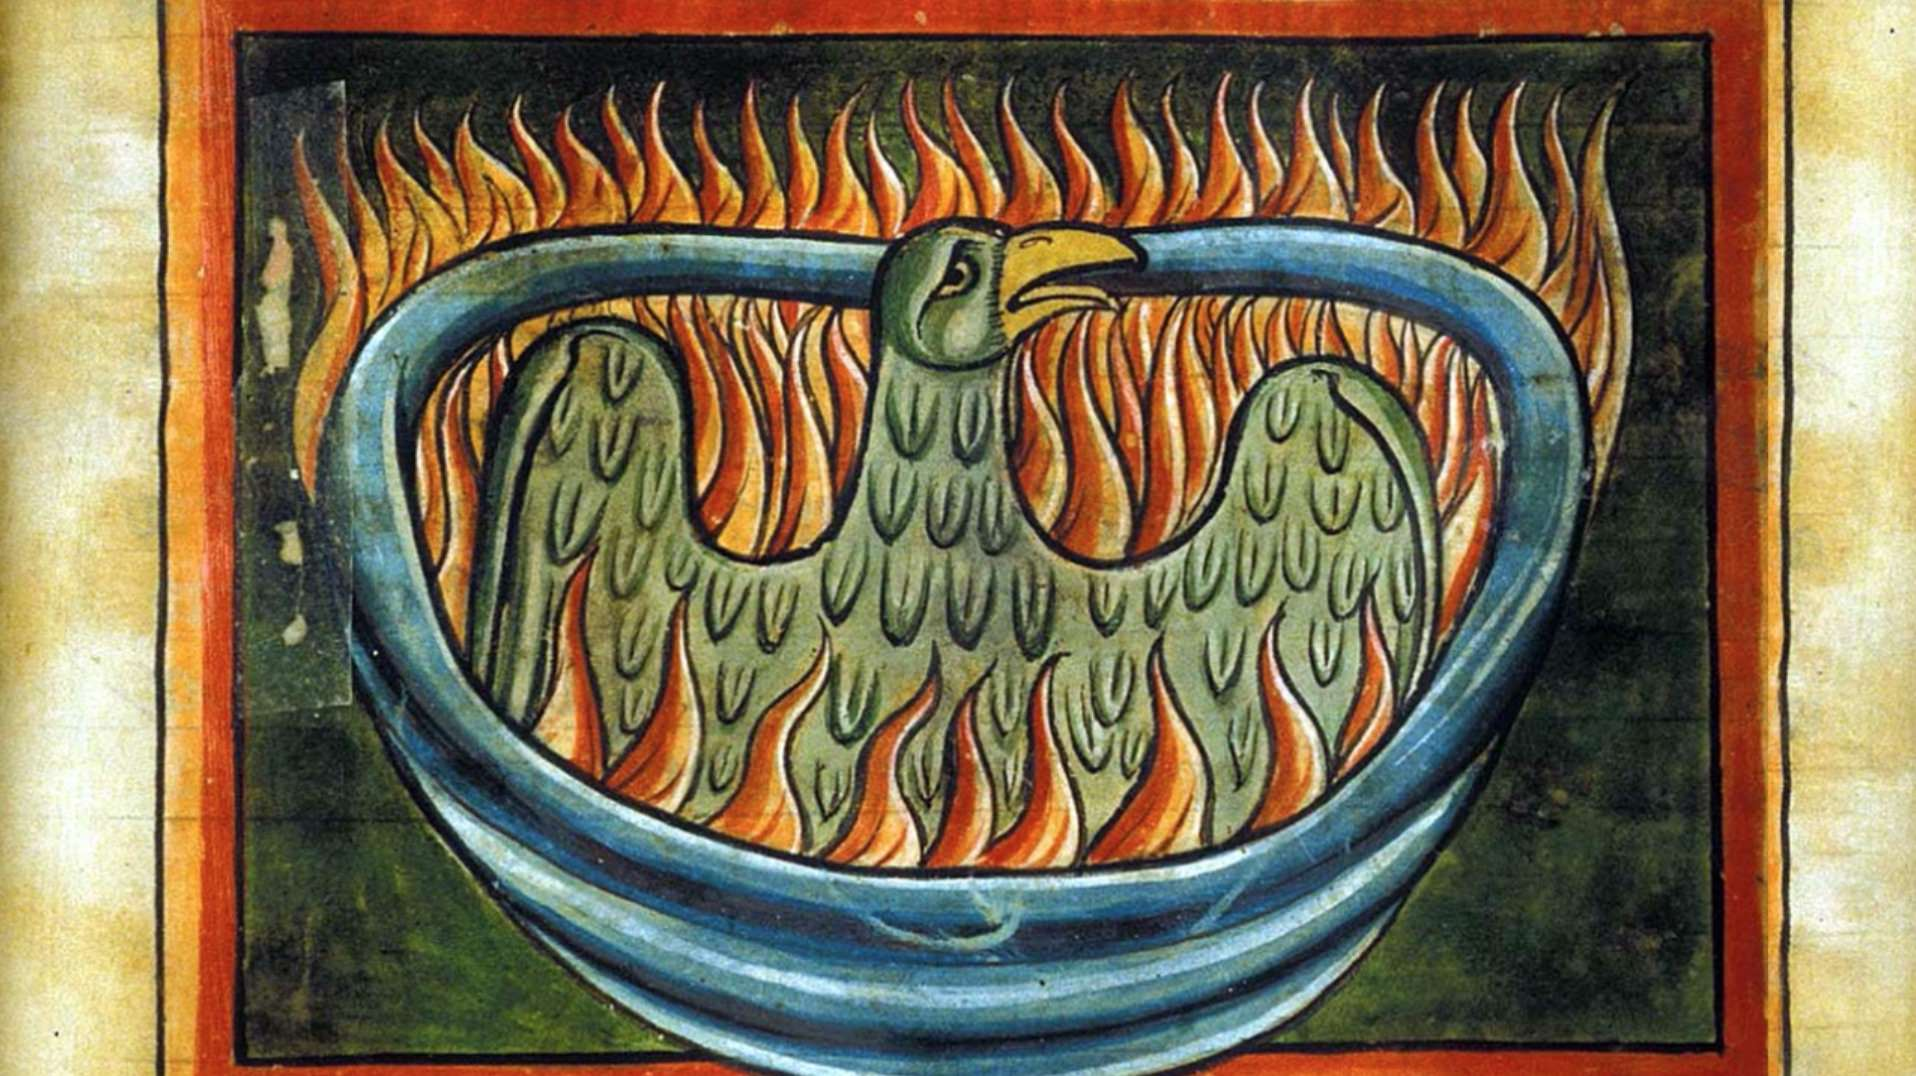 On the Death and Resurrection: A Psychological View in Five Parts